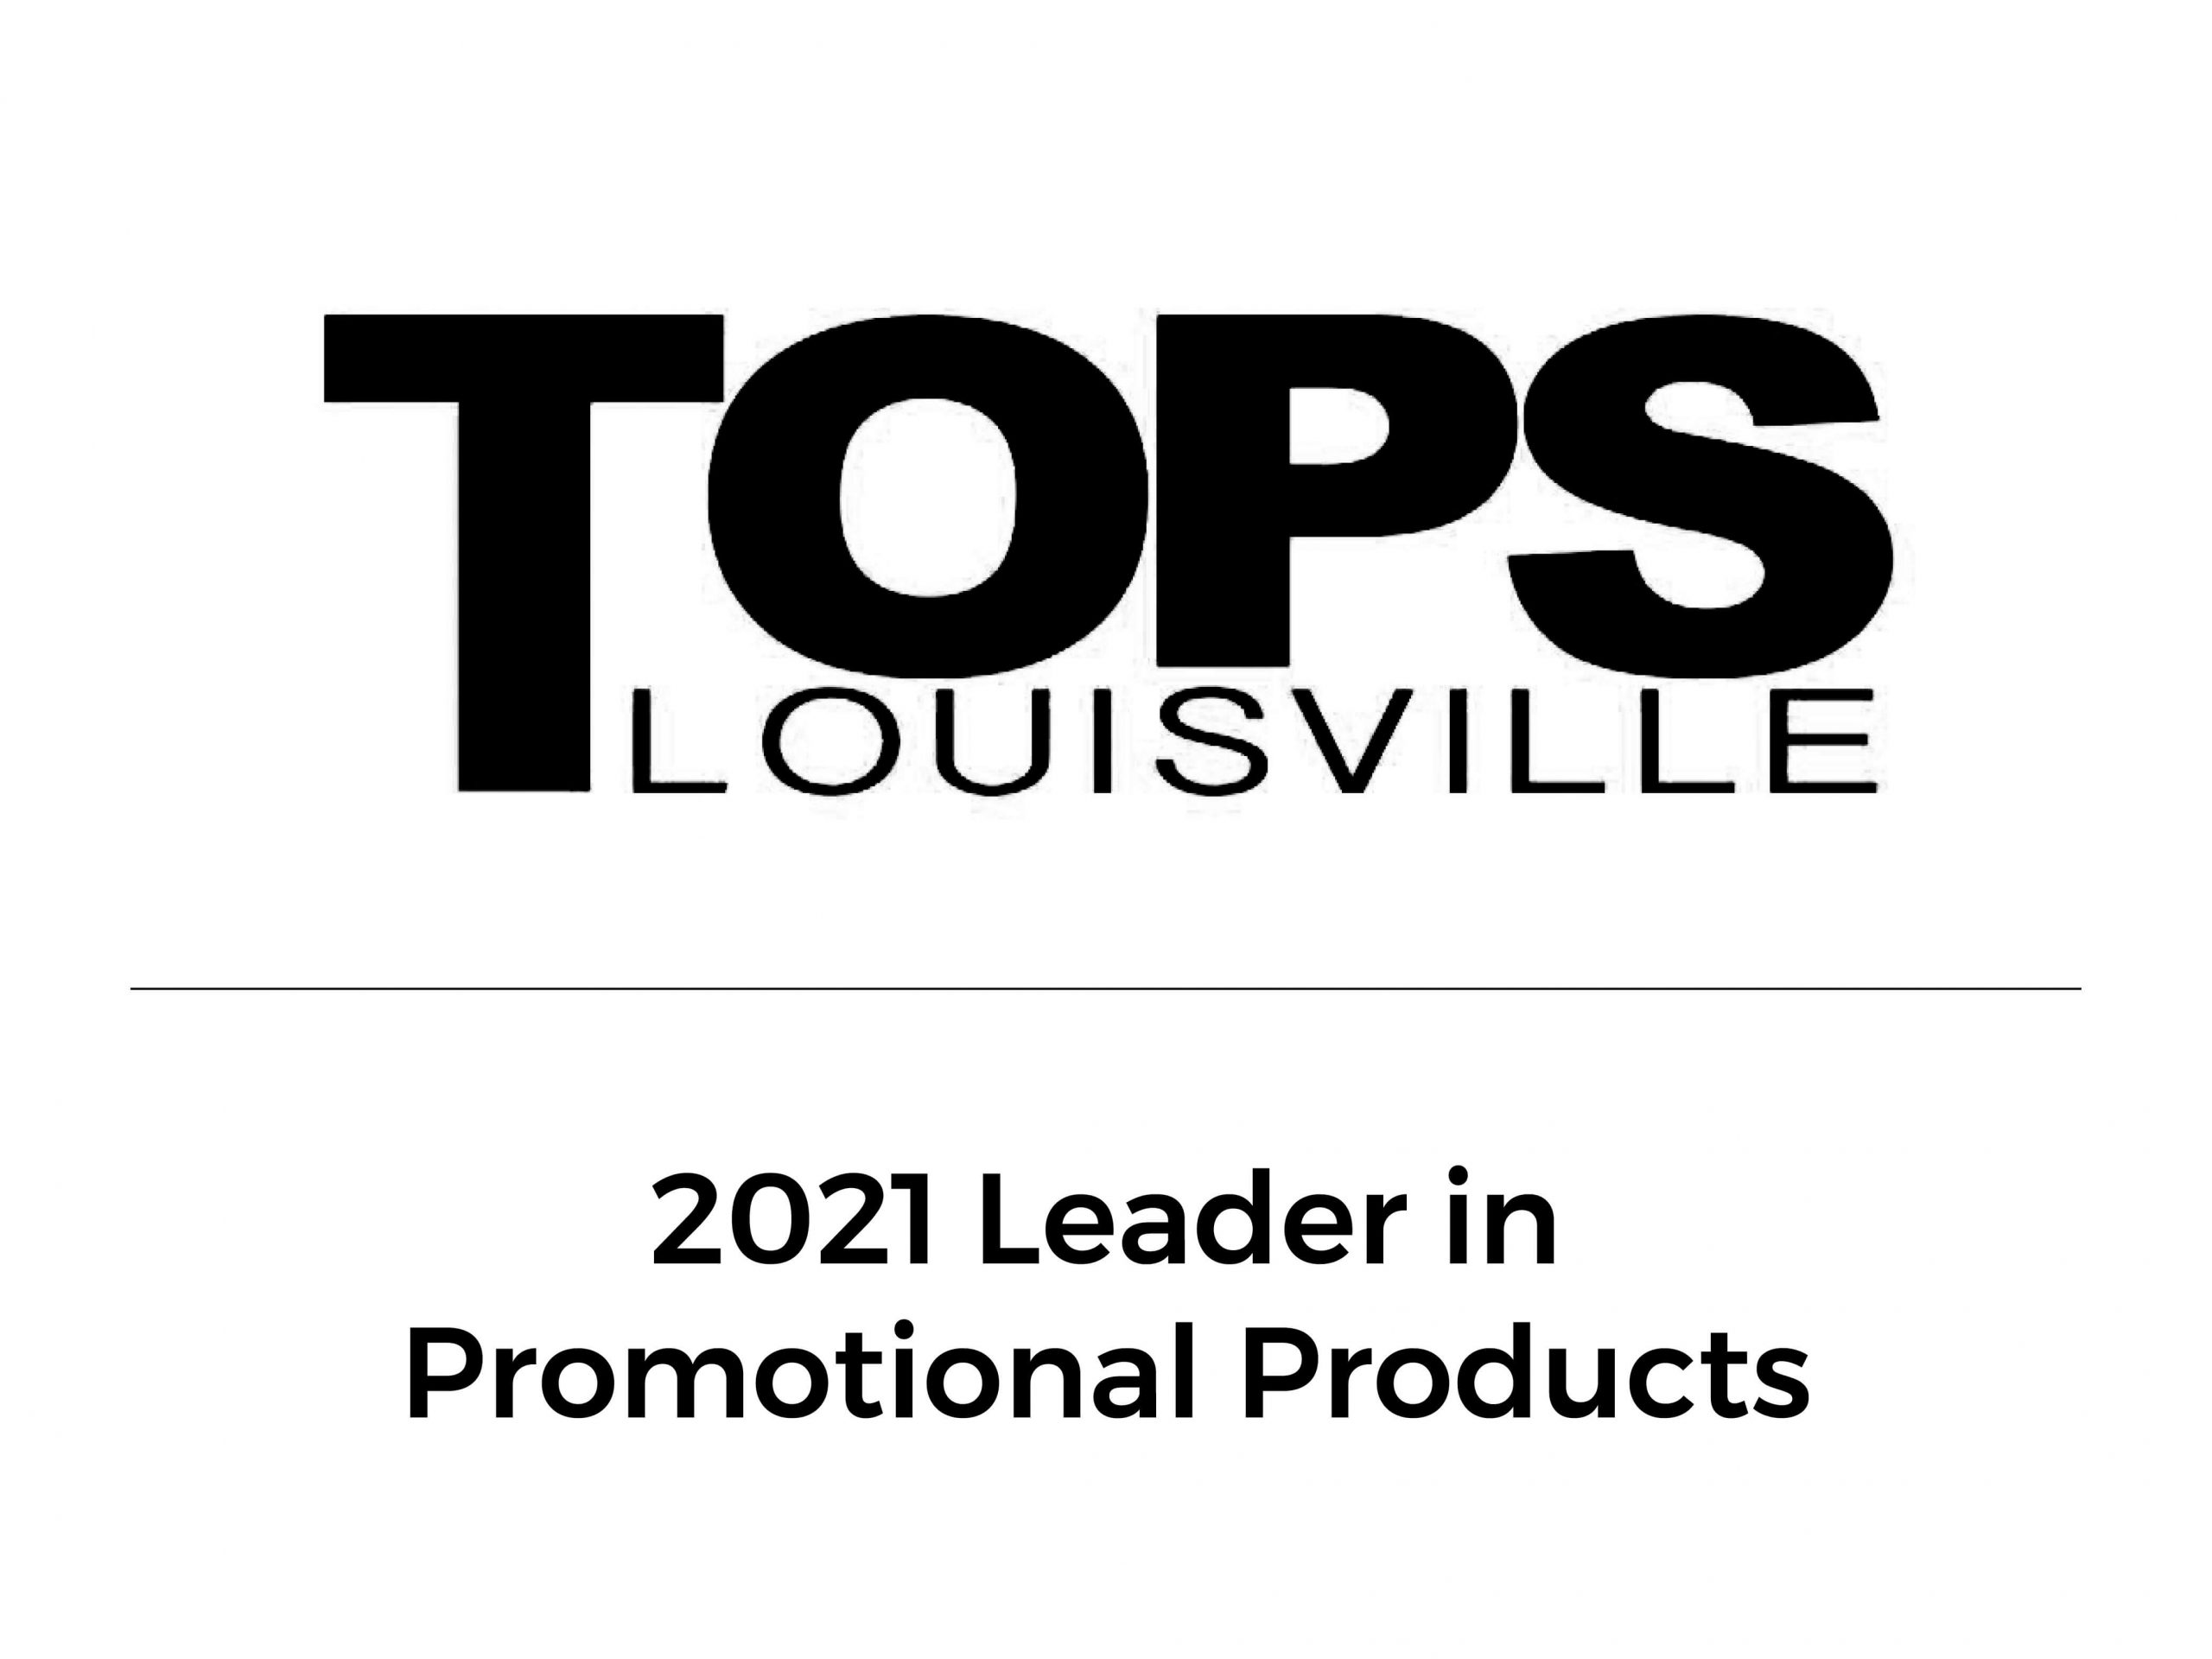 Tops Louisville 2021 Leader in Promotional Products